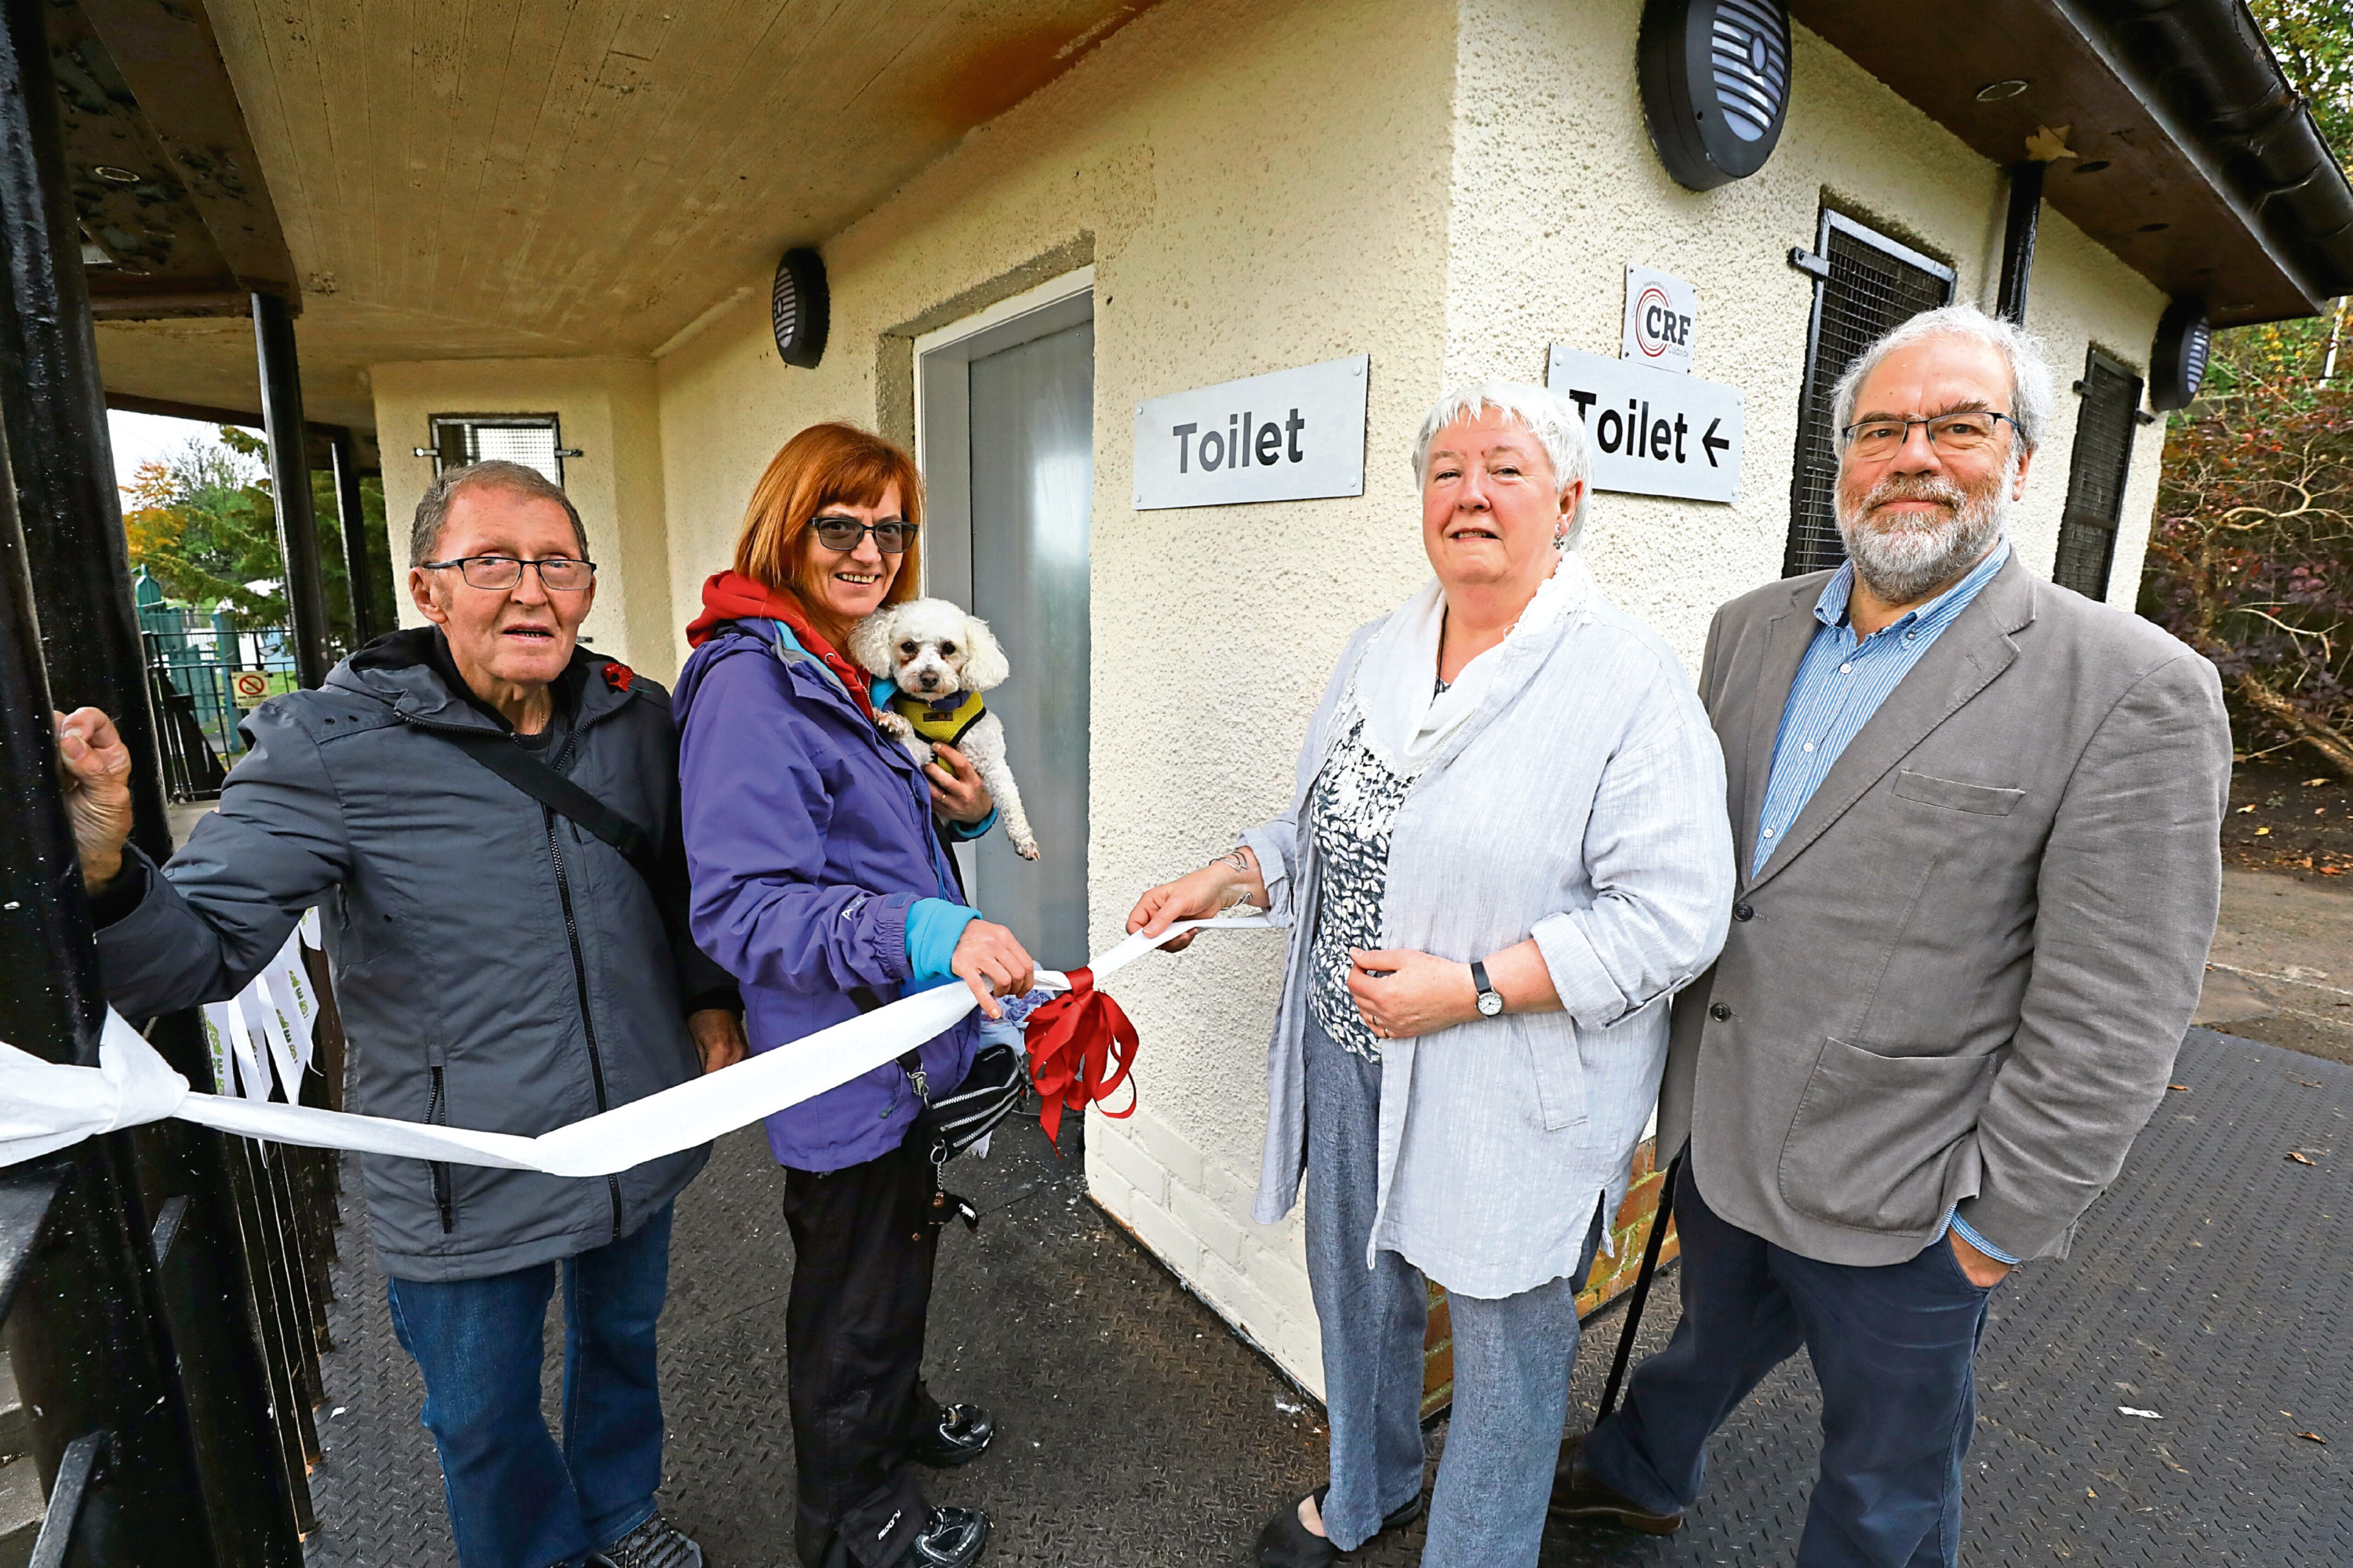 Pictured at the opening of the new loos are, from left, John Milligan of Coldside Community Regeneration Forum, local resident Carole Zabowka with her dog Nelson, Dorothy, and Steve Connelly, treasurer of the Friends of Dudhope Park